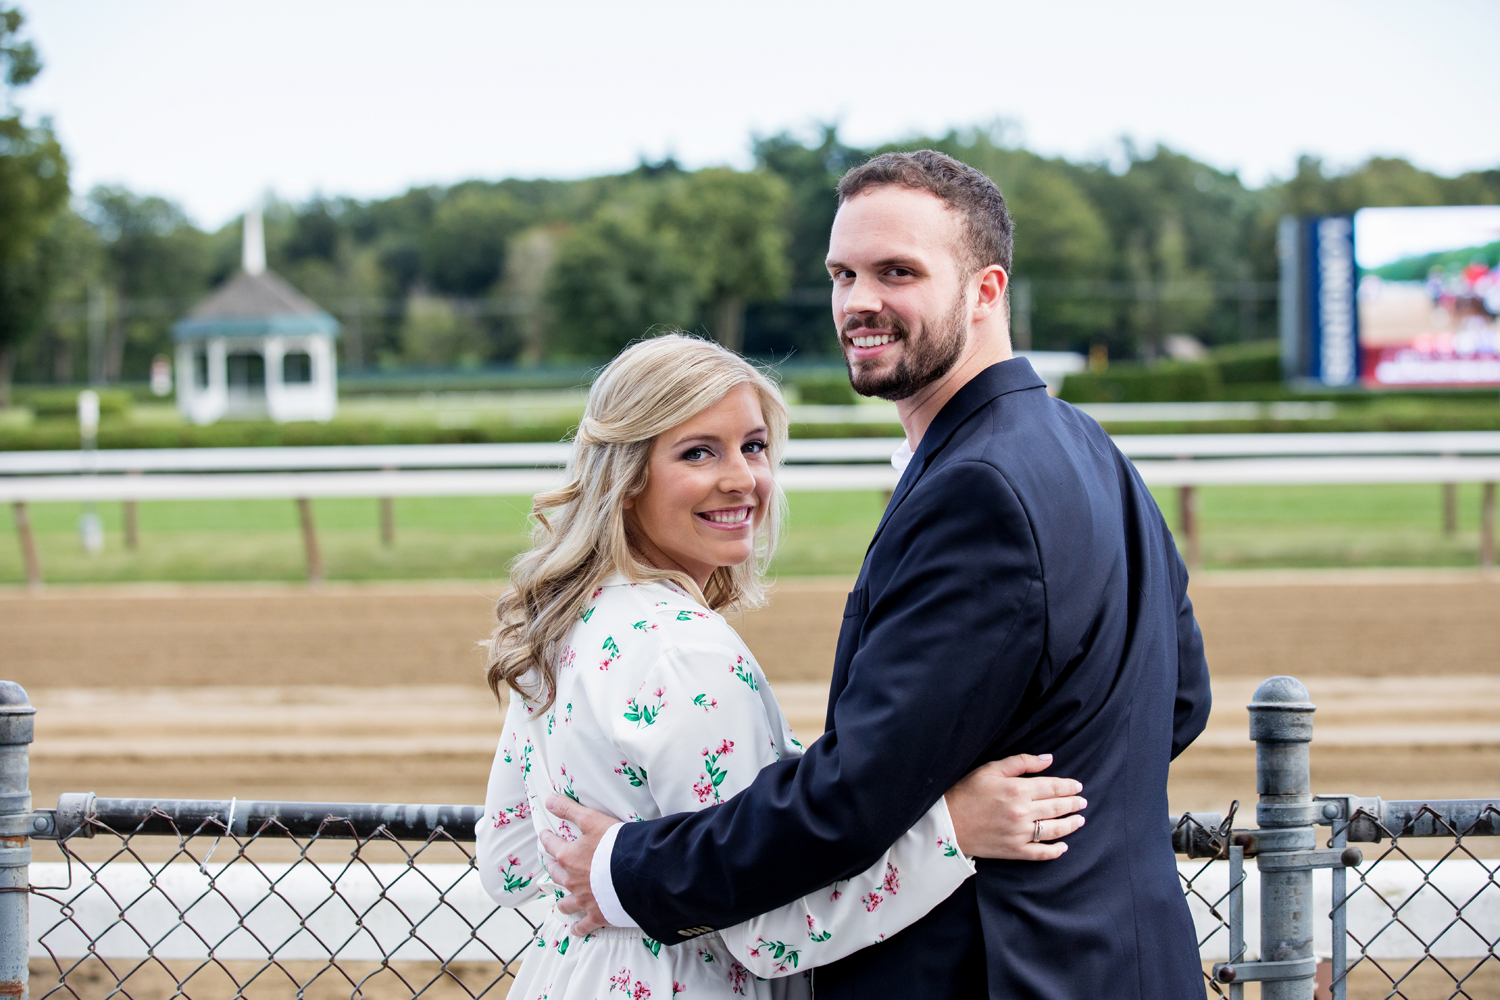 Saratoga Race Track engagement photography03.jpg